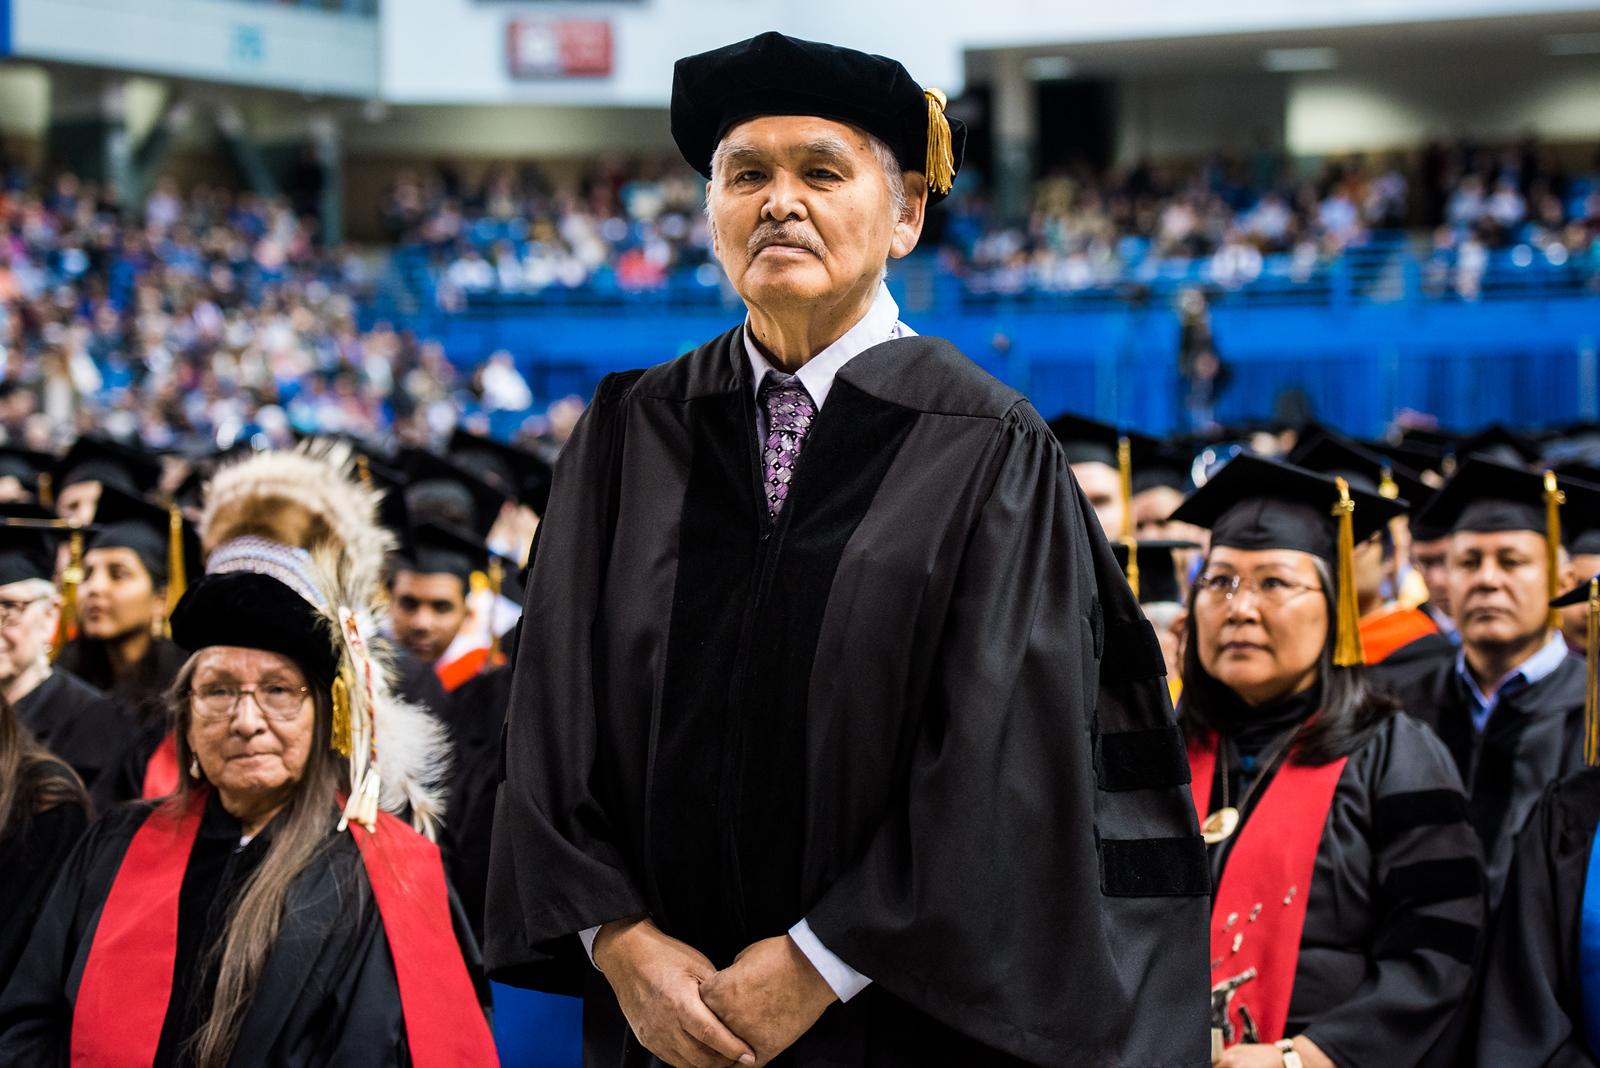 Jacob Anaġi Adams Sr. stands while being recognized for an honorary Doctor of Laws degree during UAF's 2018 commencement ceremony at the Carlson Center on May 5, 2018.